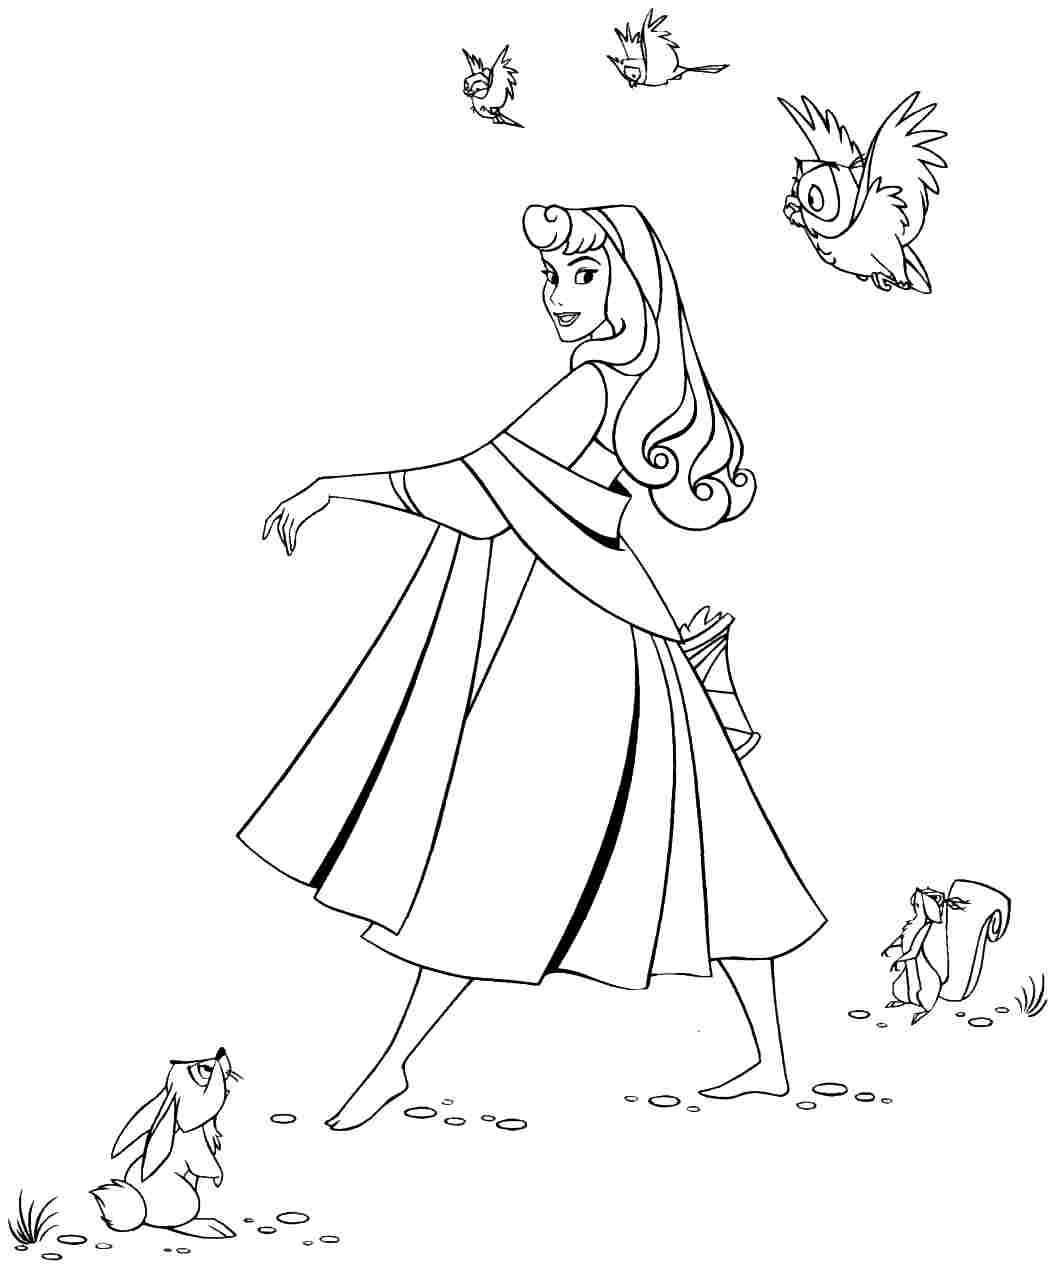 sleeping beauty coloring pages sleeping beauty to color for kids sleeping beauty kids beauty coloring sleeping pages